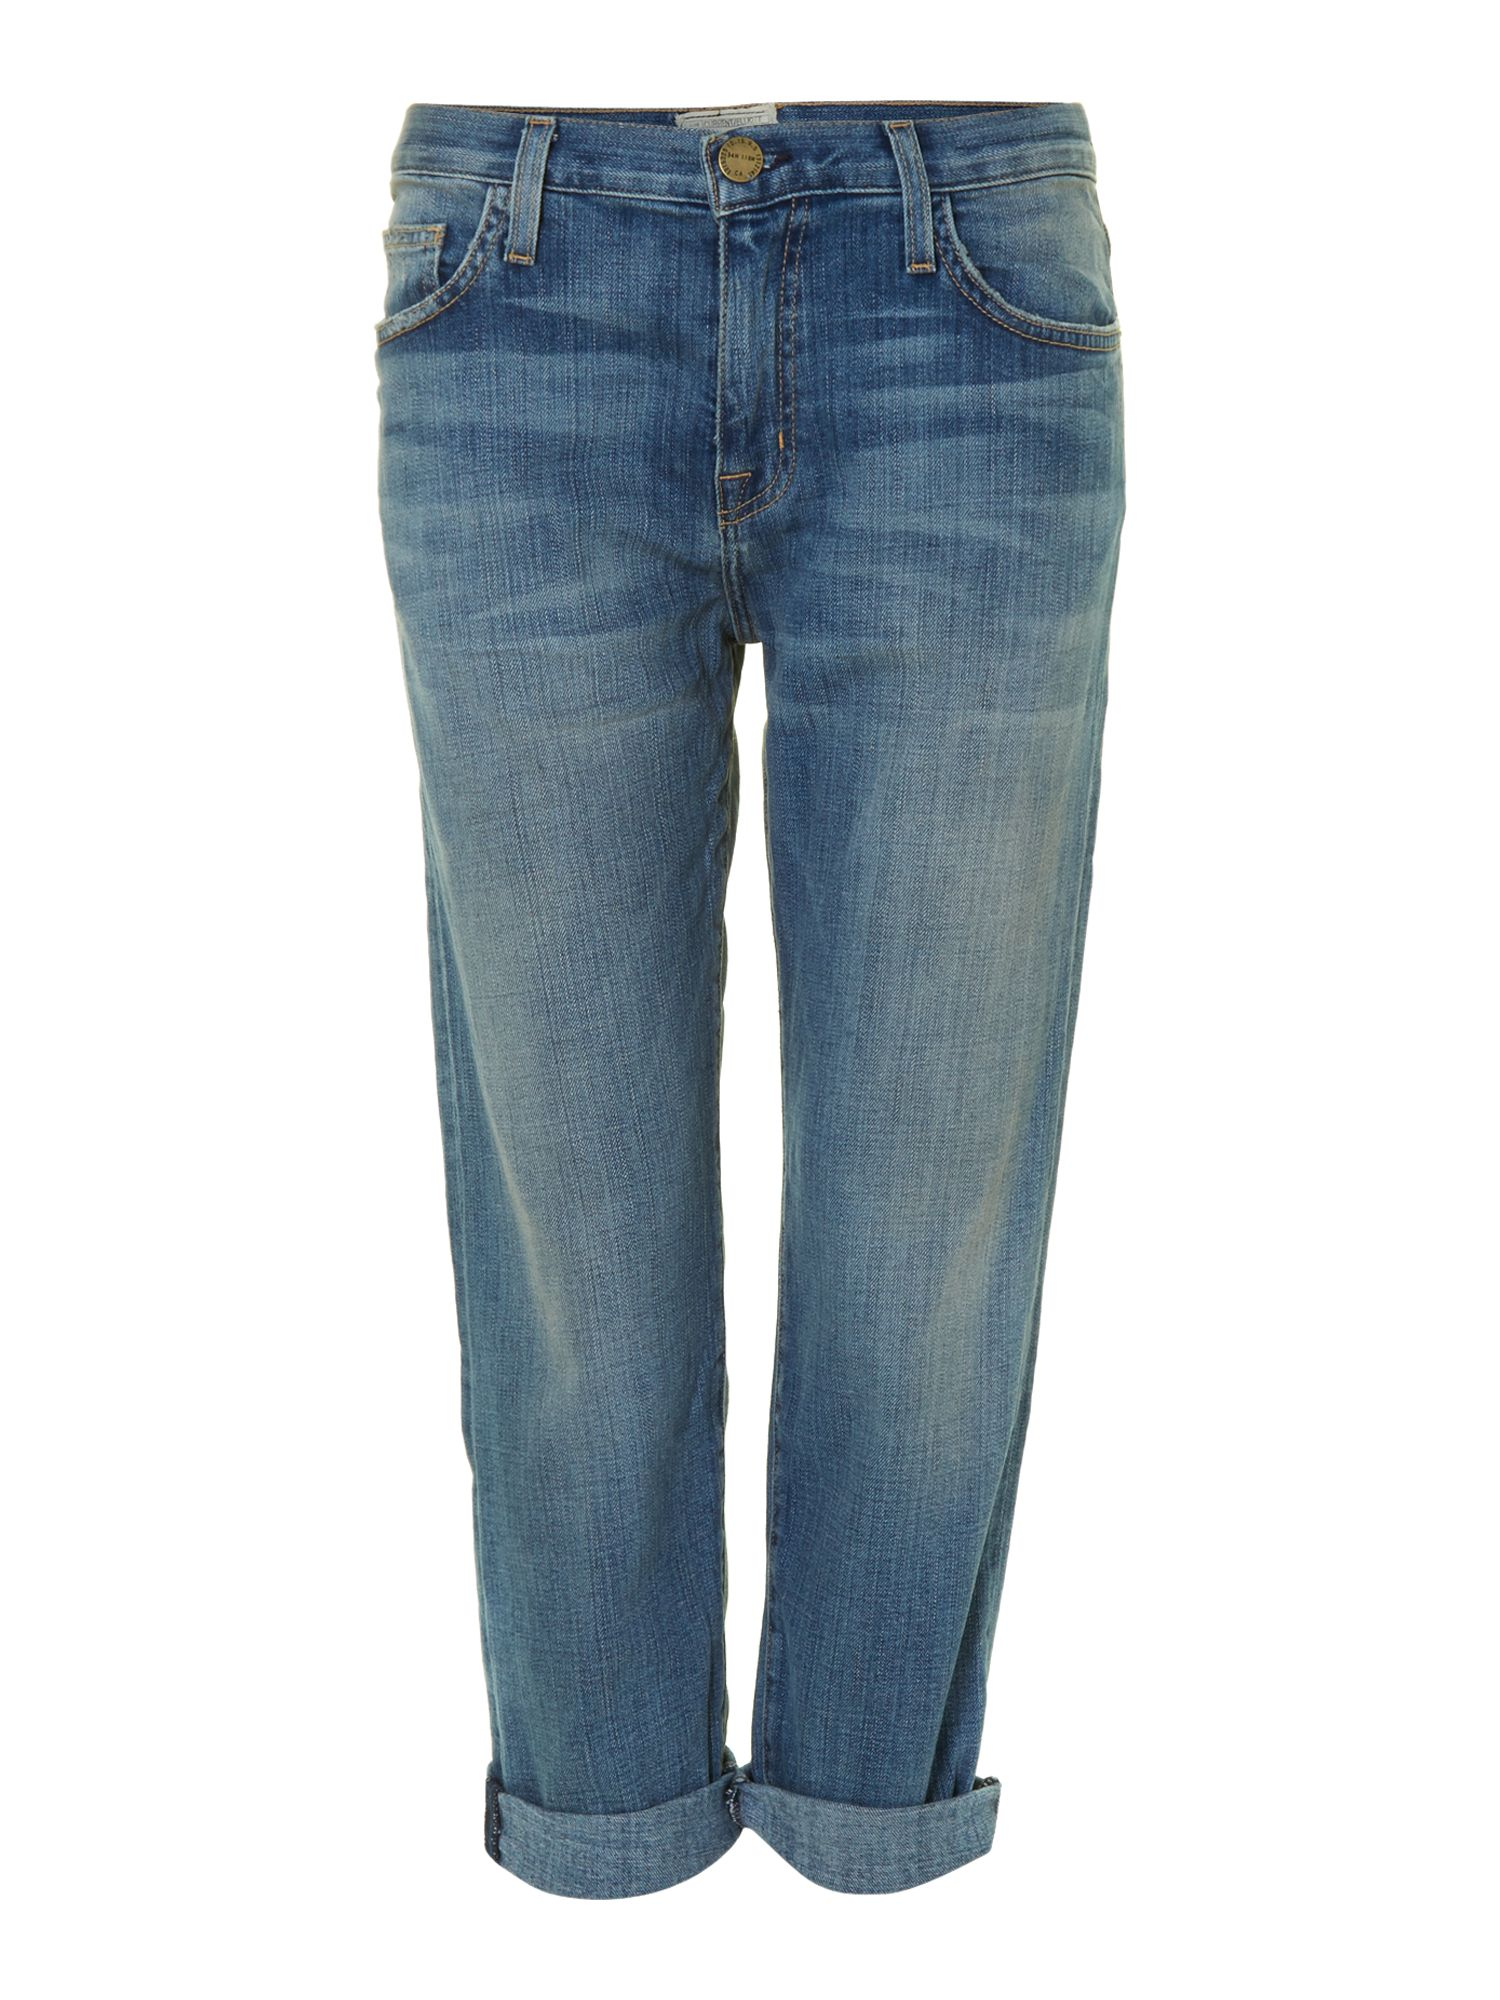 The Boyfriend jeans in Super Loved